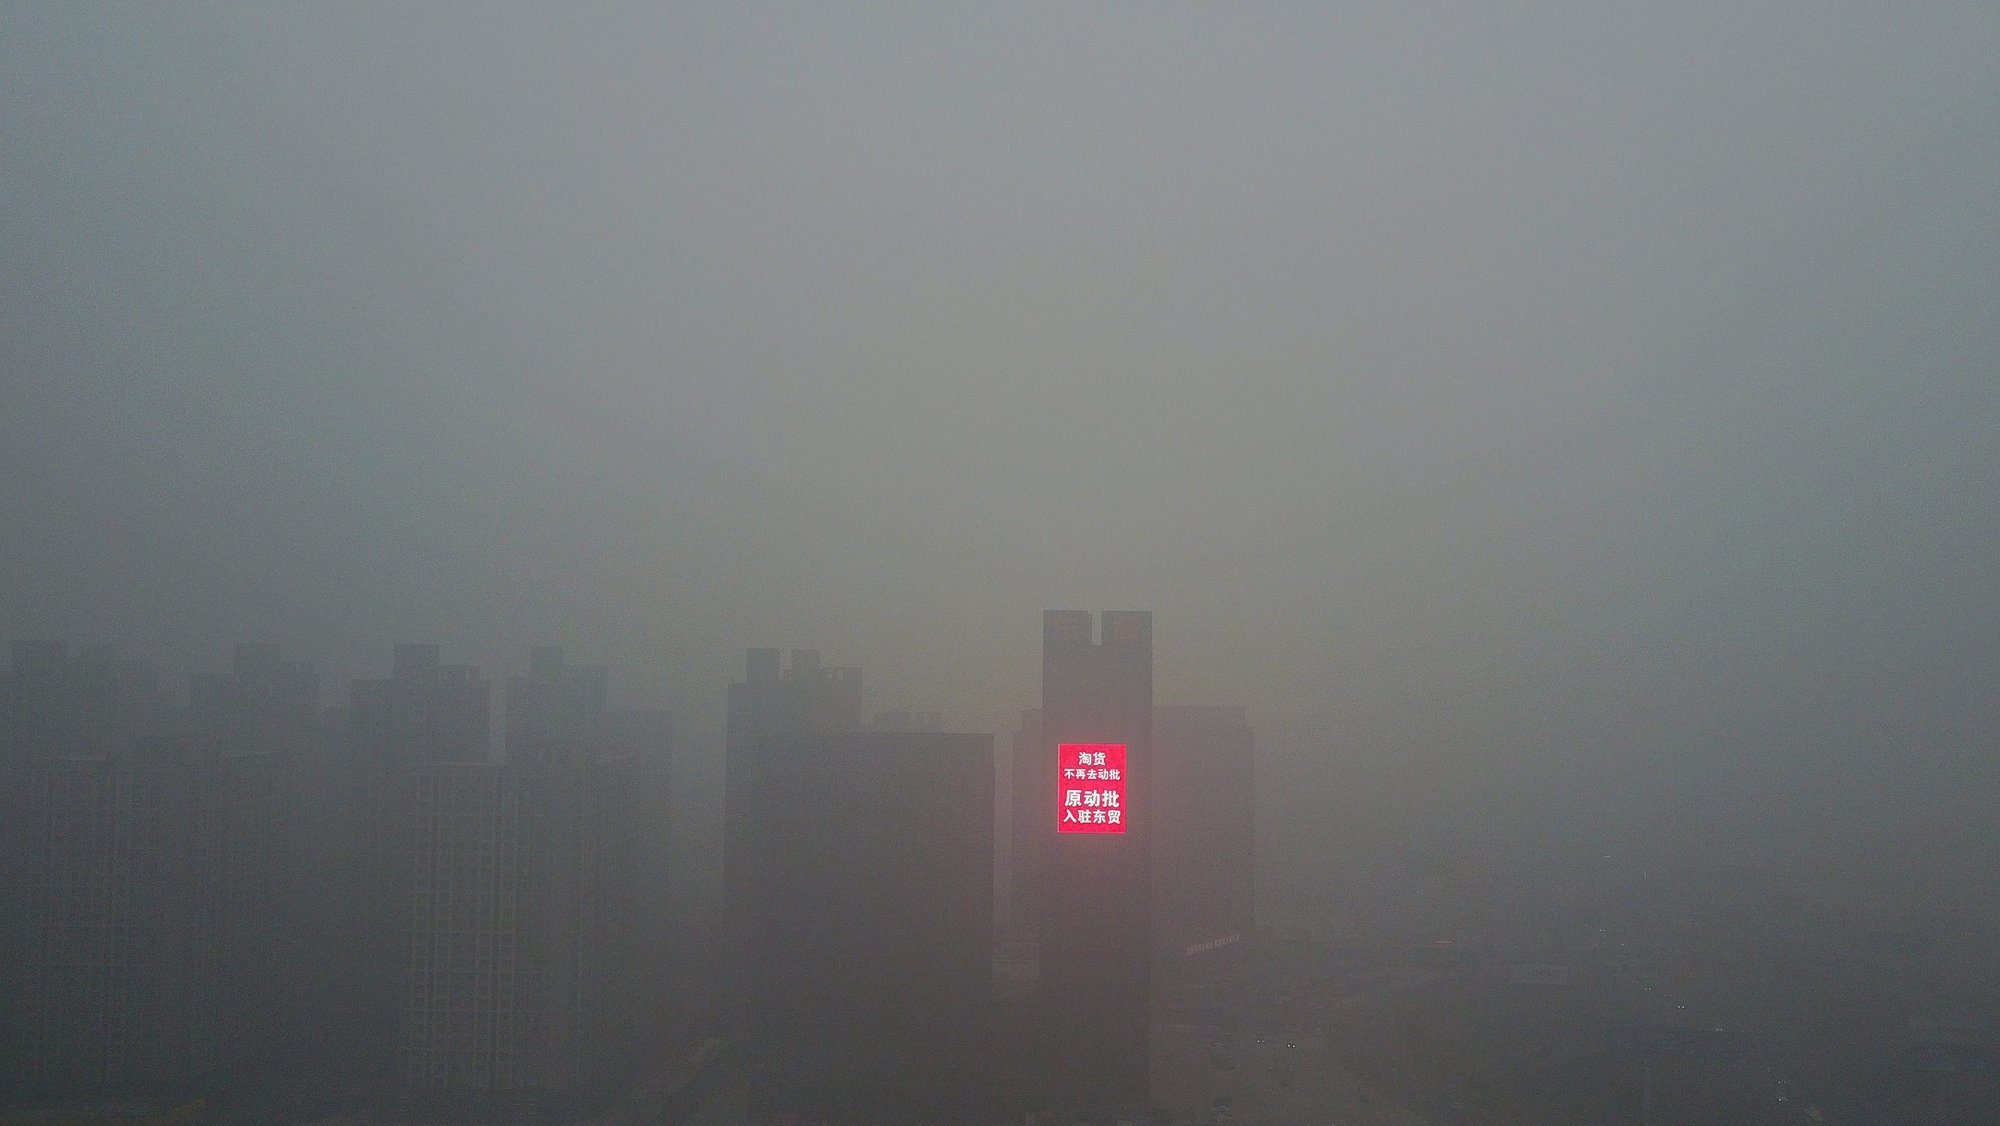 epa05698737 Buildings are shrouded in smog in the Yanjiao district of Sanhe, Hebei province, China, 05 January 2017. Heavy smog continues to affect vast areas of China with visibility said to be less than 200 meters in areas that included the cities of Beijing and Tianjin, and the provinces of Hebei, Henan, Shandong, Anhui, Jiangsu and Shanxi.  EPA/HOW HWEE YOUNG